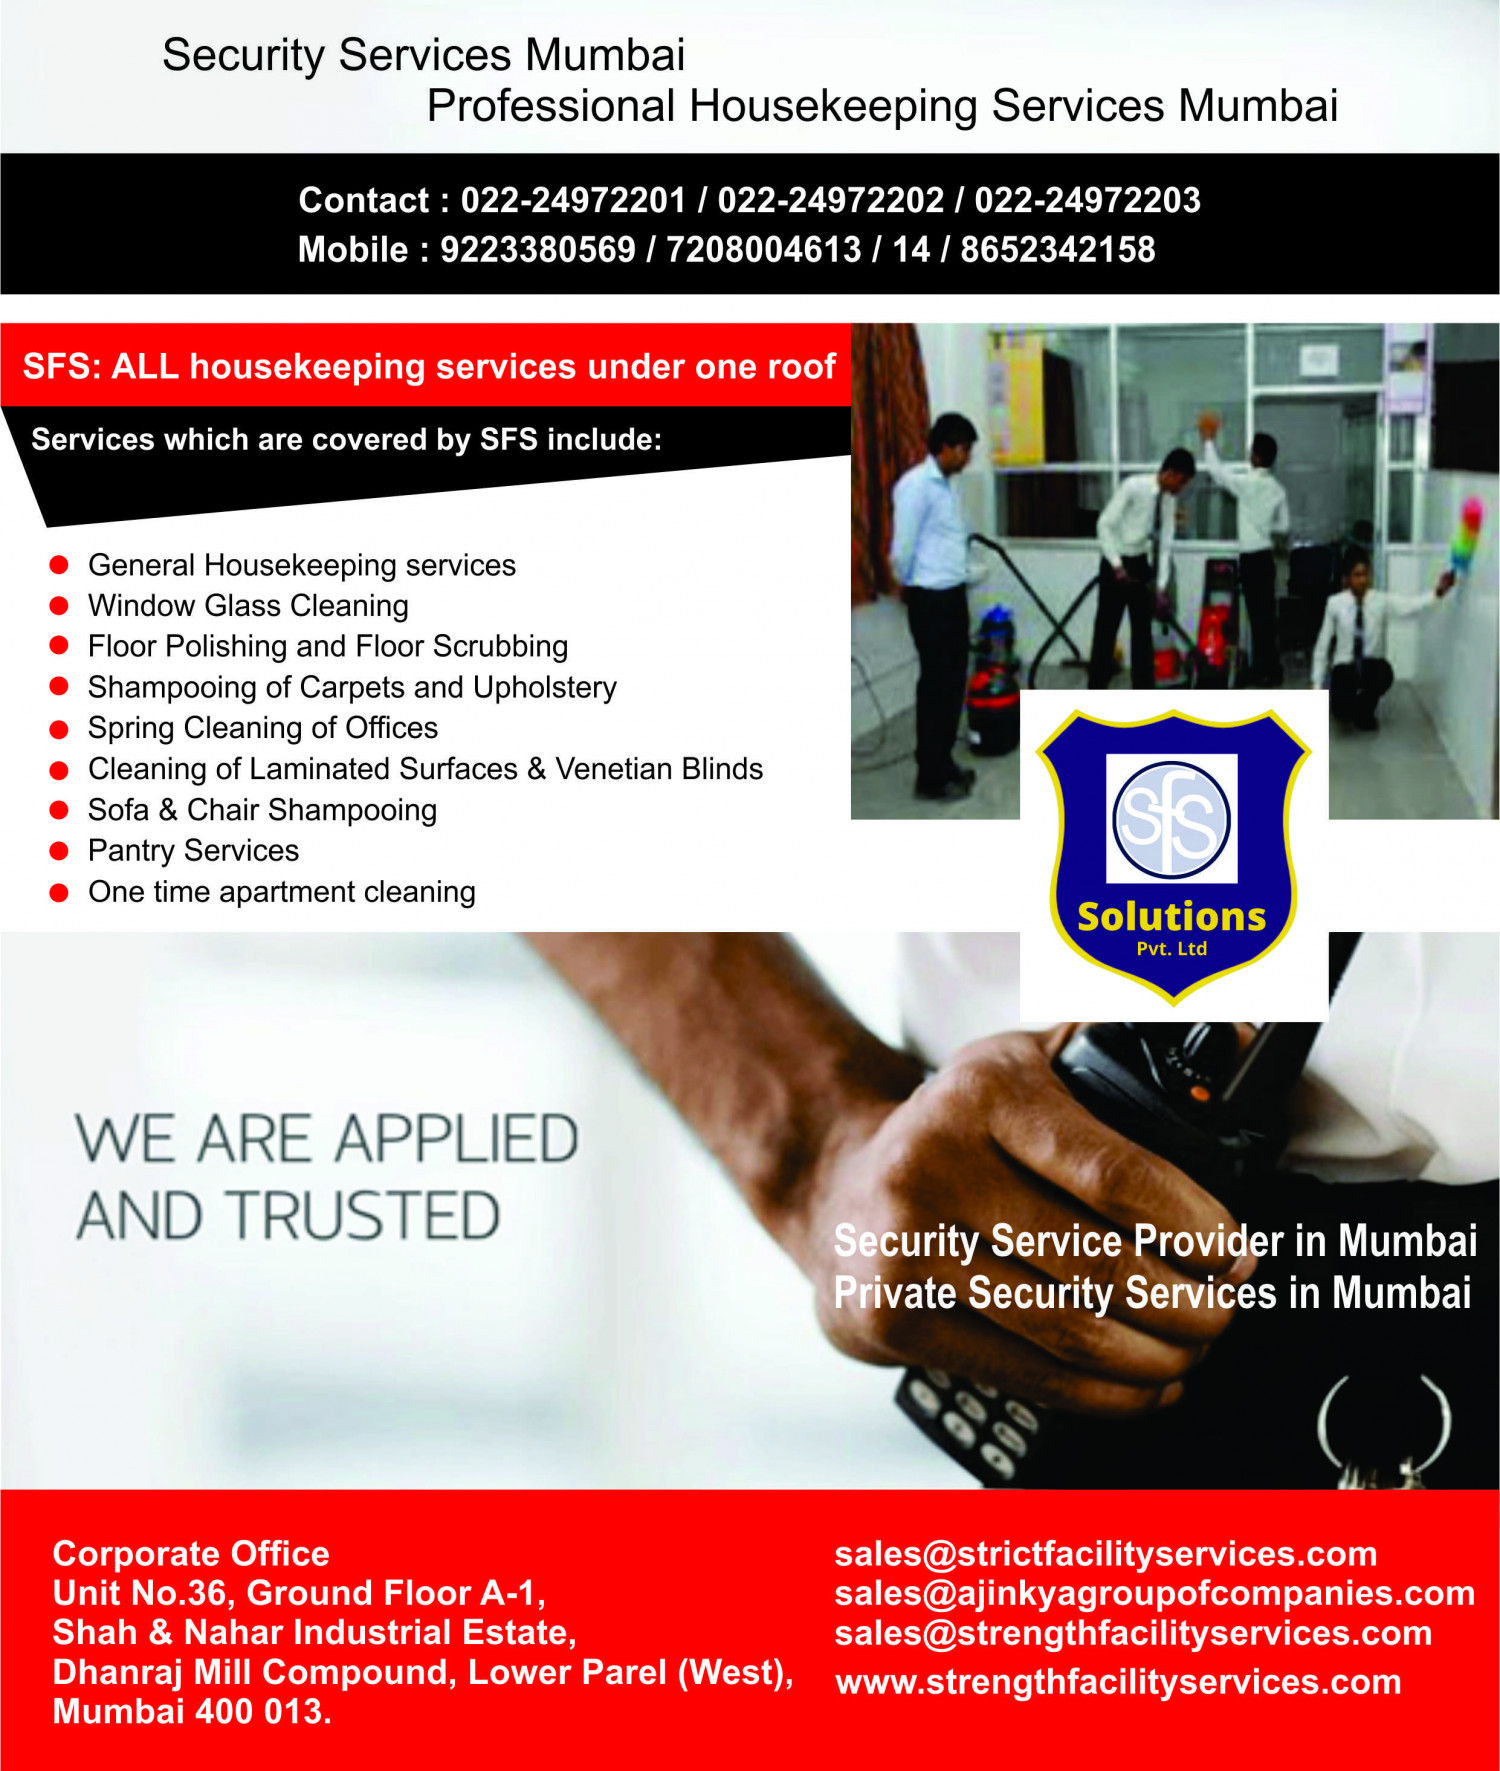 Residential security and housekeeping services in mumbai Infographic